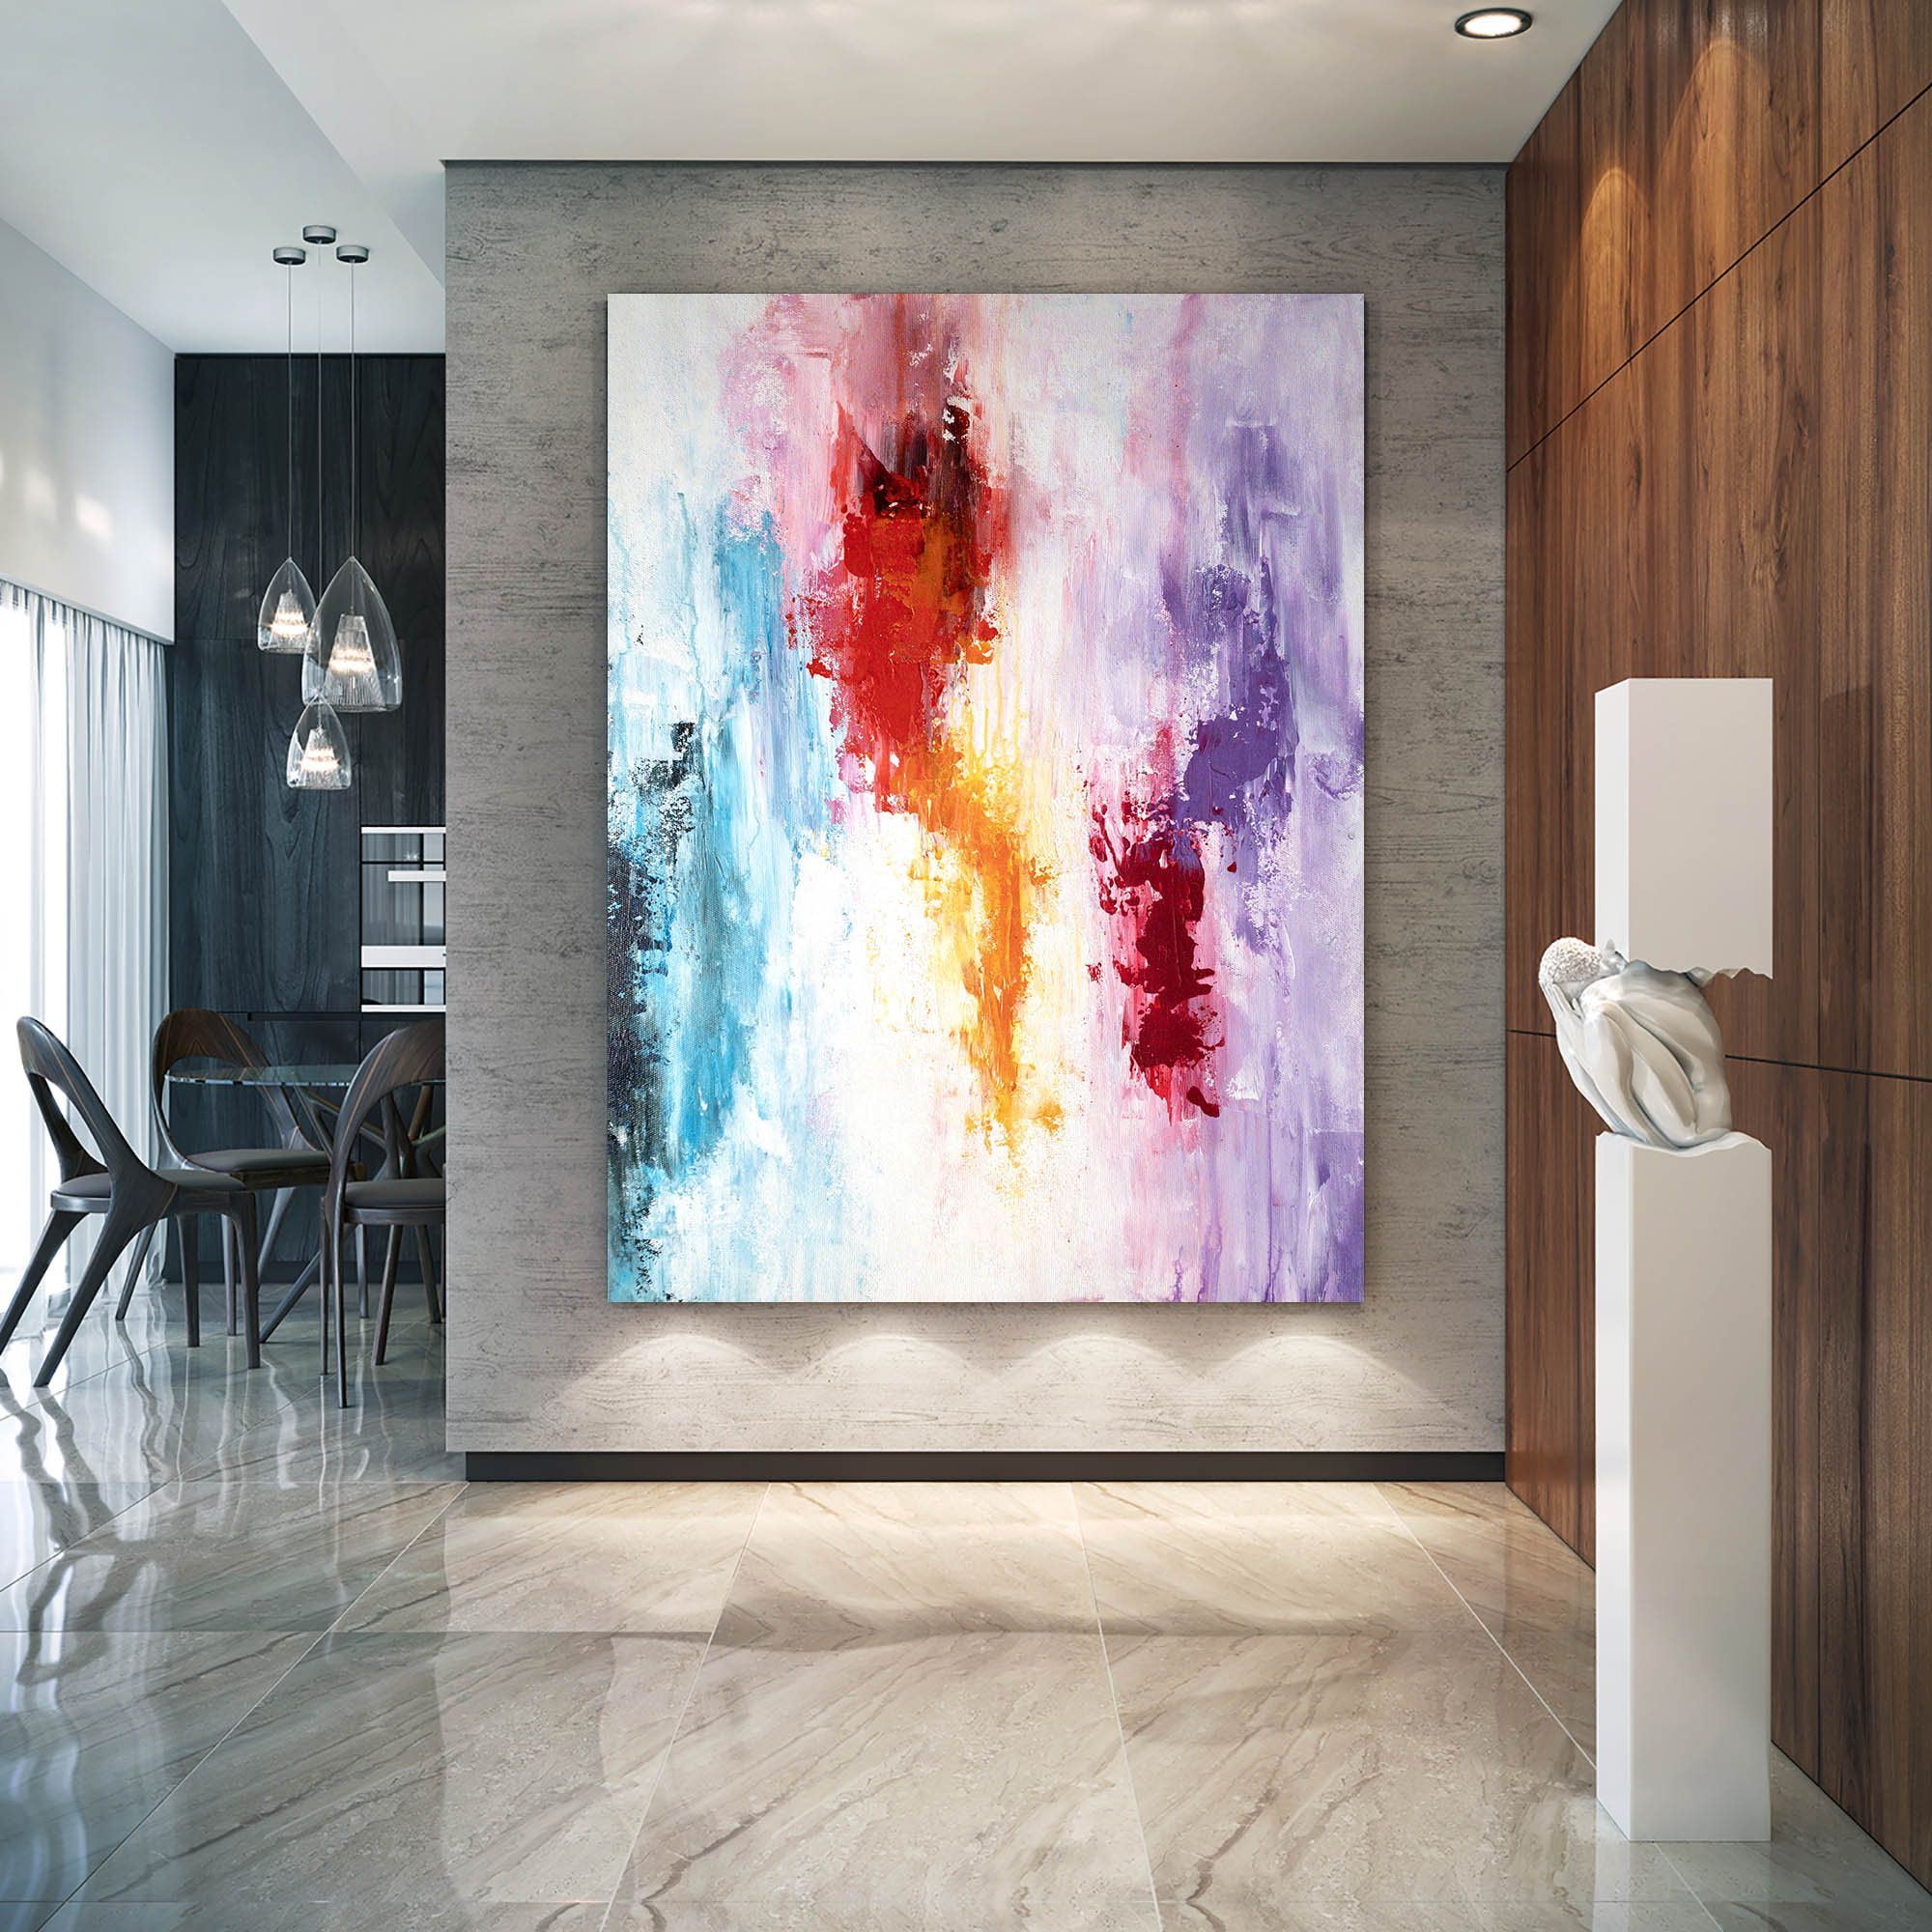 Large Modern Wall Art Paintinglarge Abstract Wall Etsy Large Abstract Wall Art Abstract Wall Art Painting Large Modern Wall Art